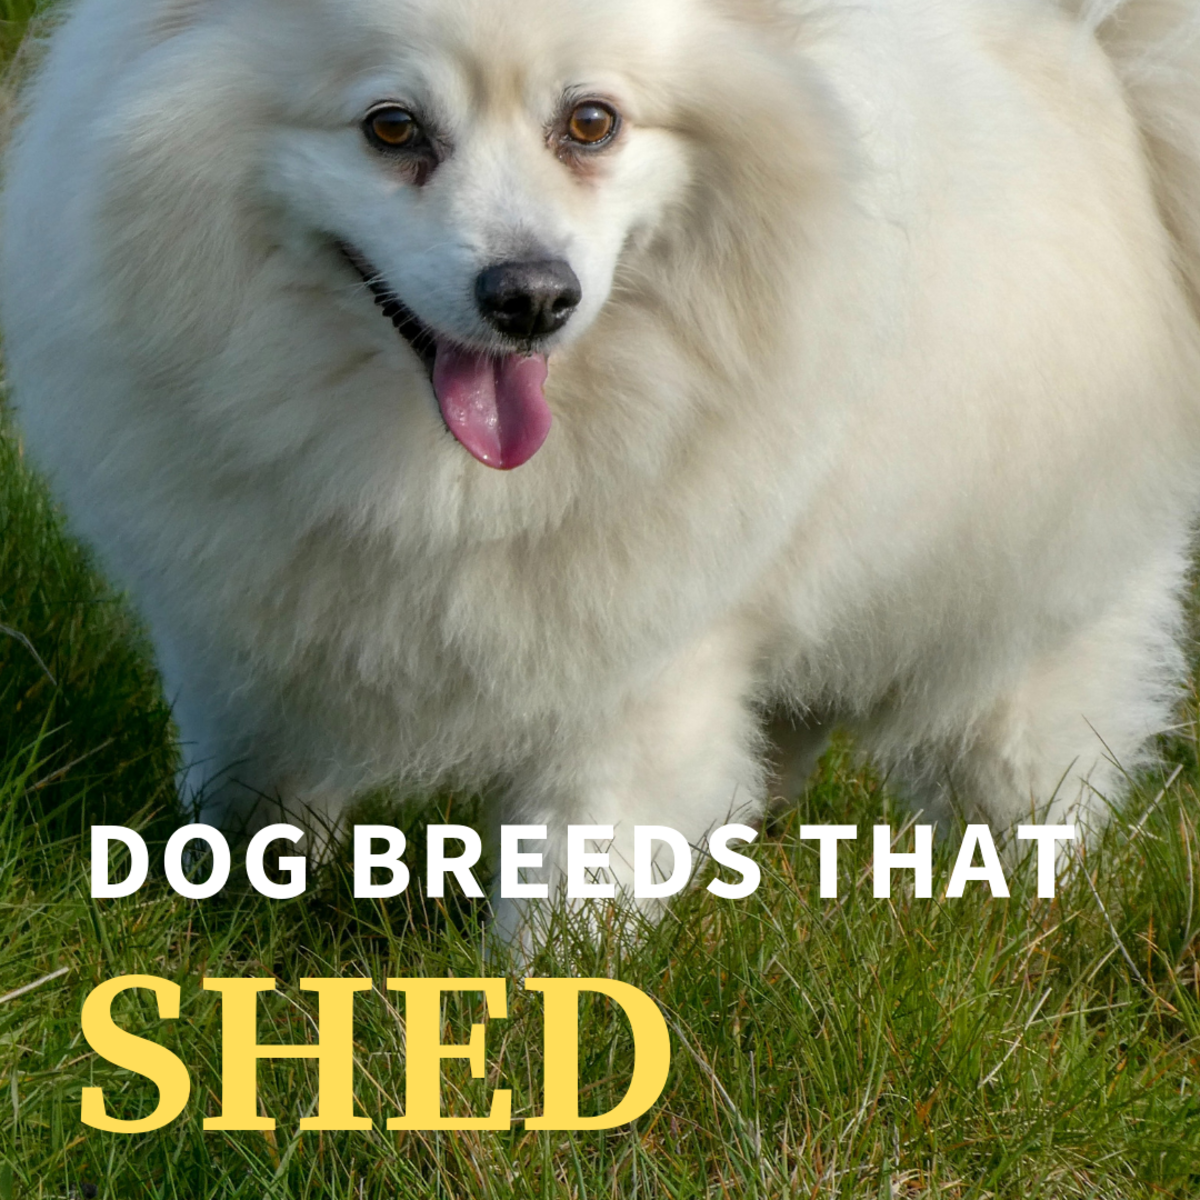 5 Dog Breeds That Shed a Lot